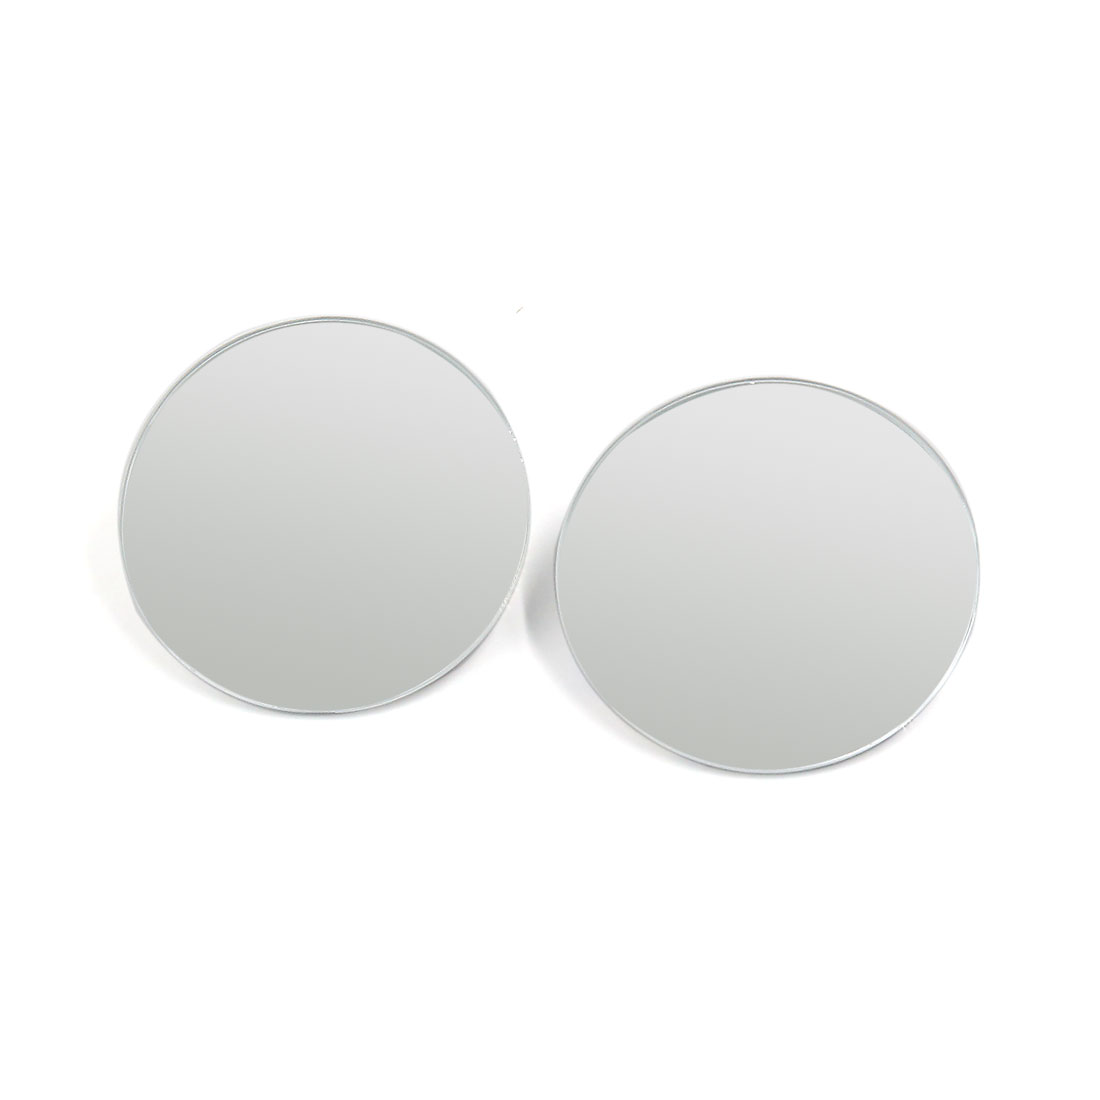 52mm Dia Round Convex Self-adhesive Adjustable Car Rear View Blind Spot Mirror 2pcs